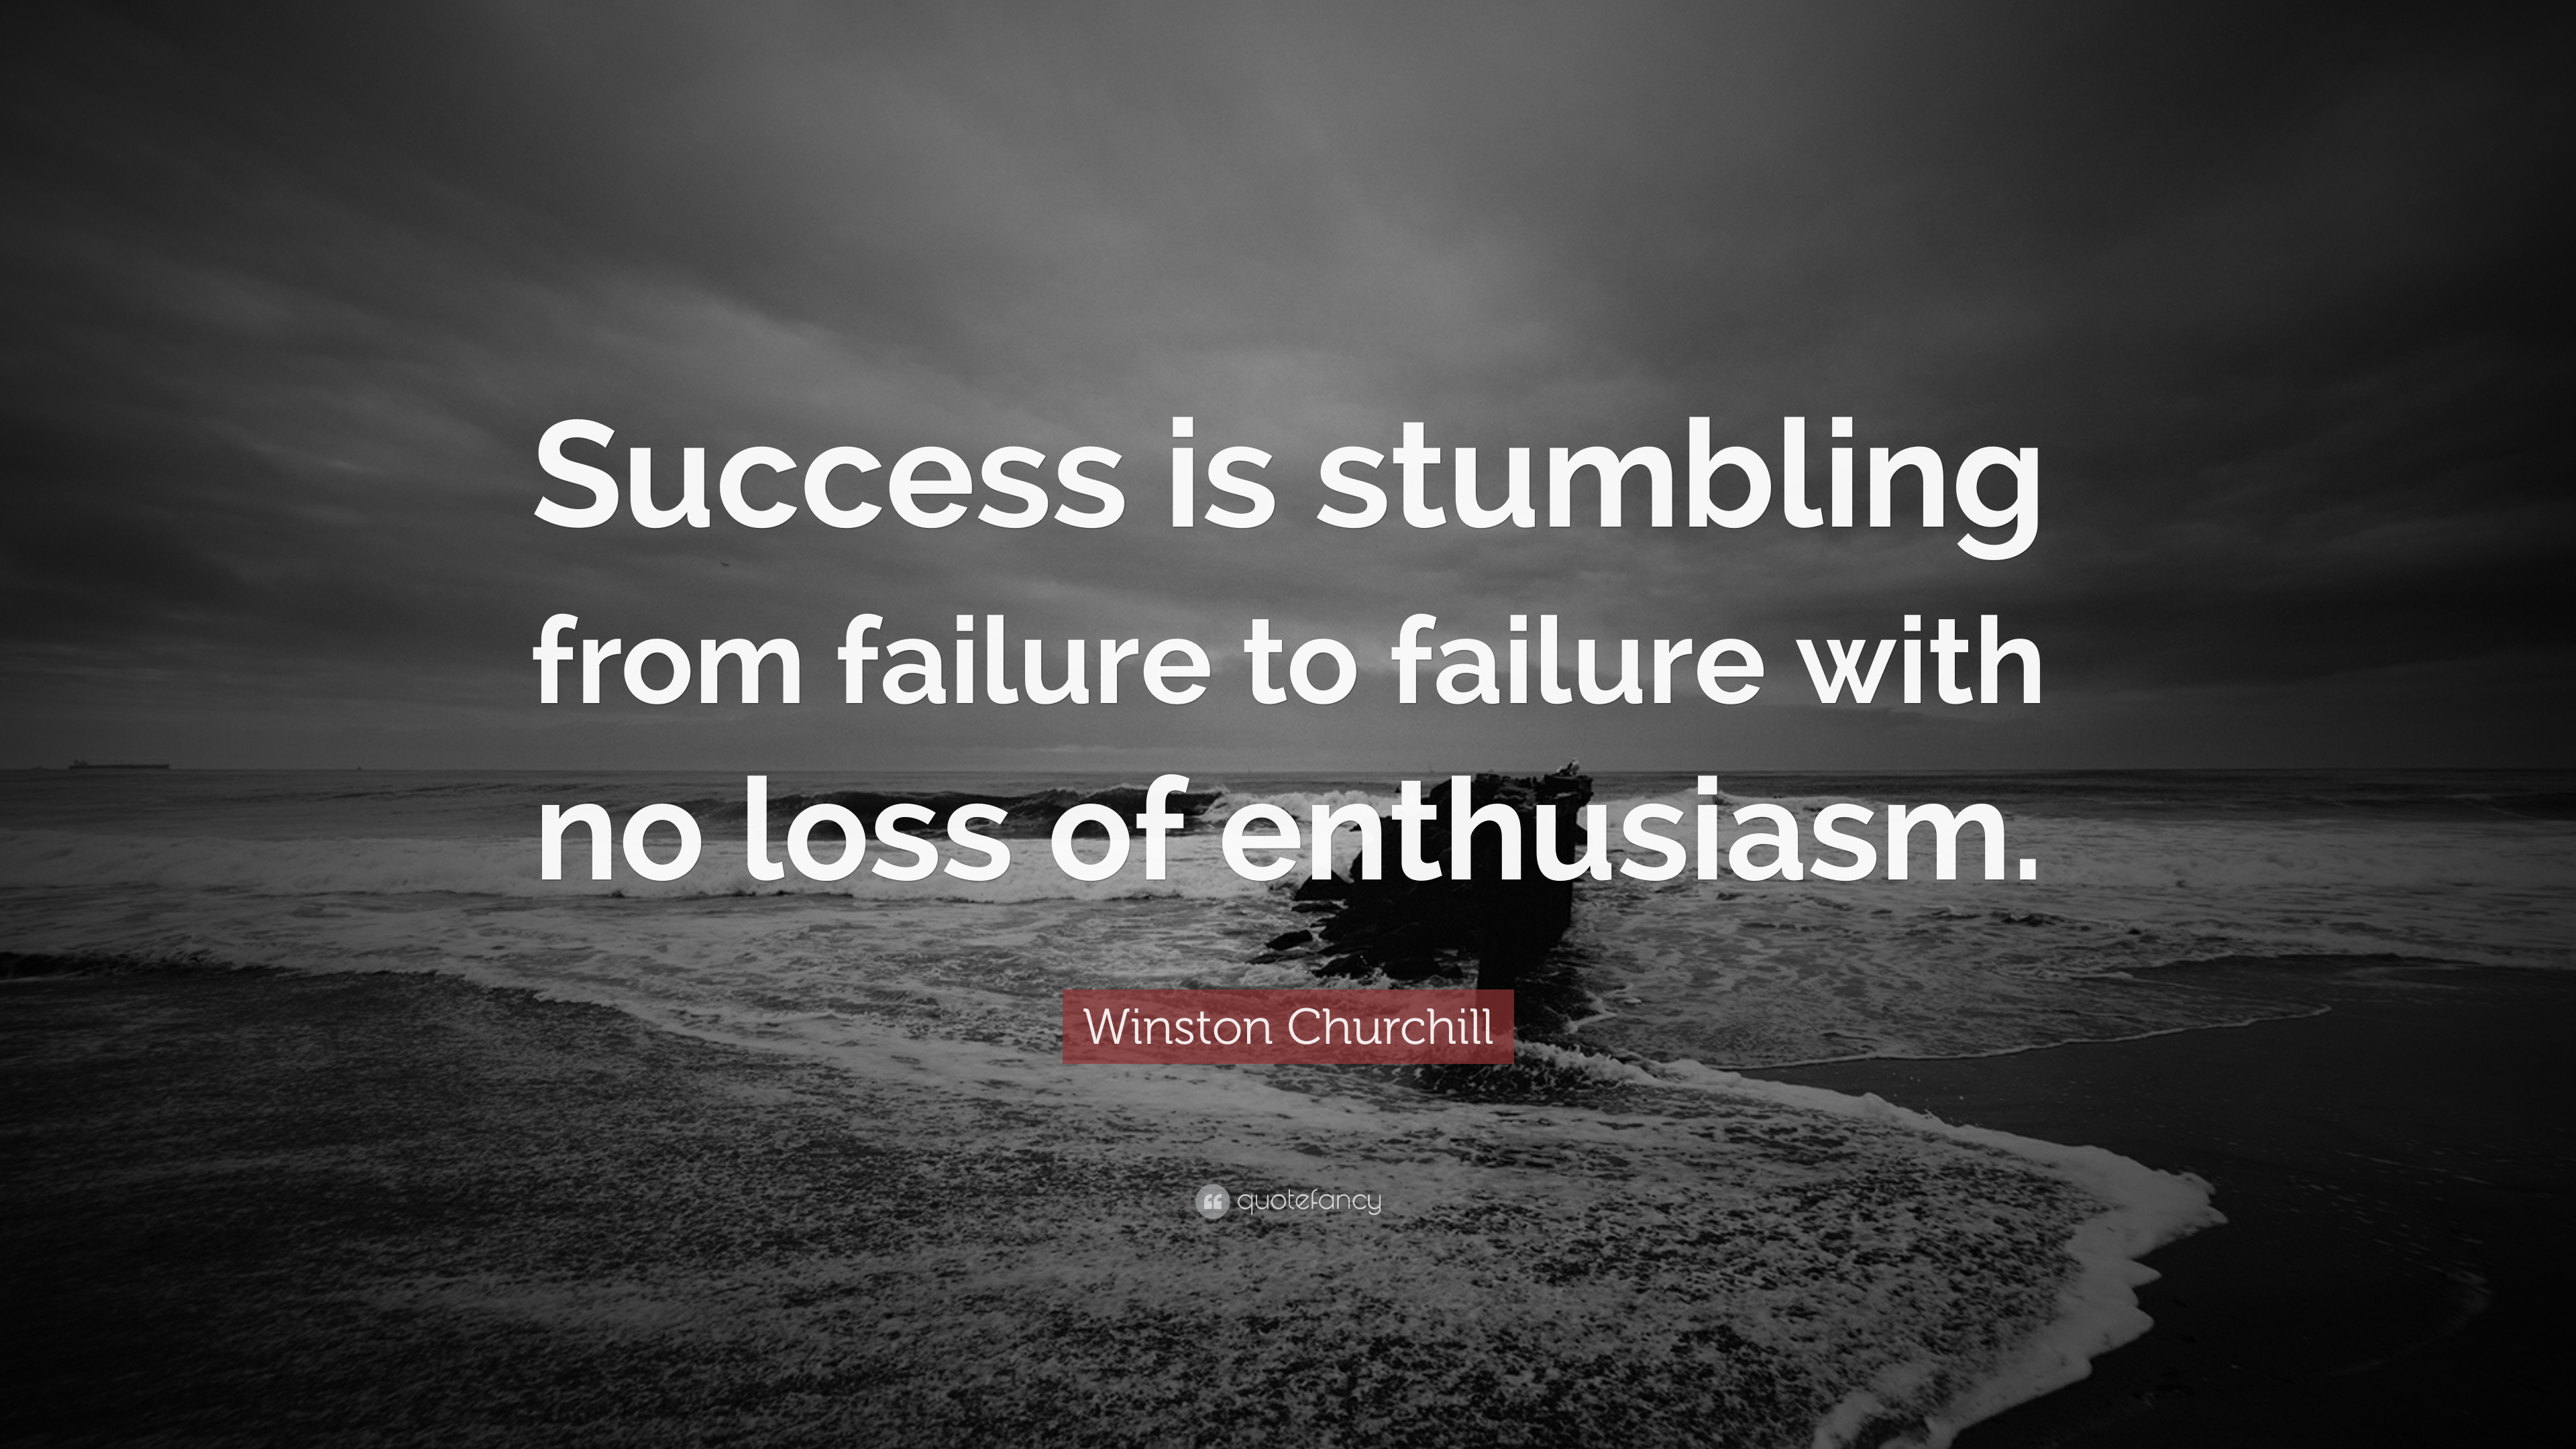 Winston Churchill Quote Success Is Stumbling From Failure To Failure With No Loss Of Enthusiasm 25 Wallpapers Quotefancy